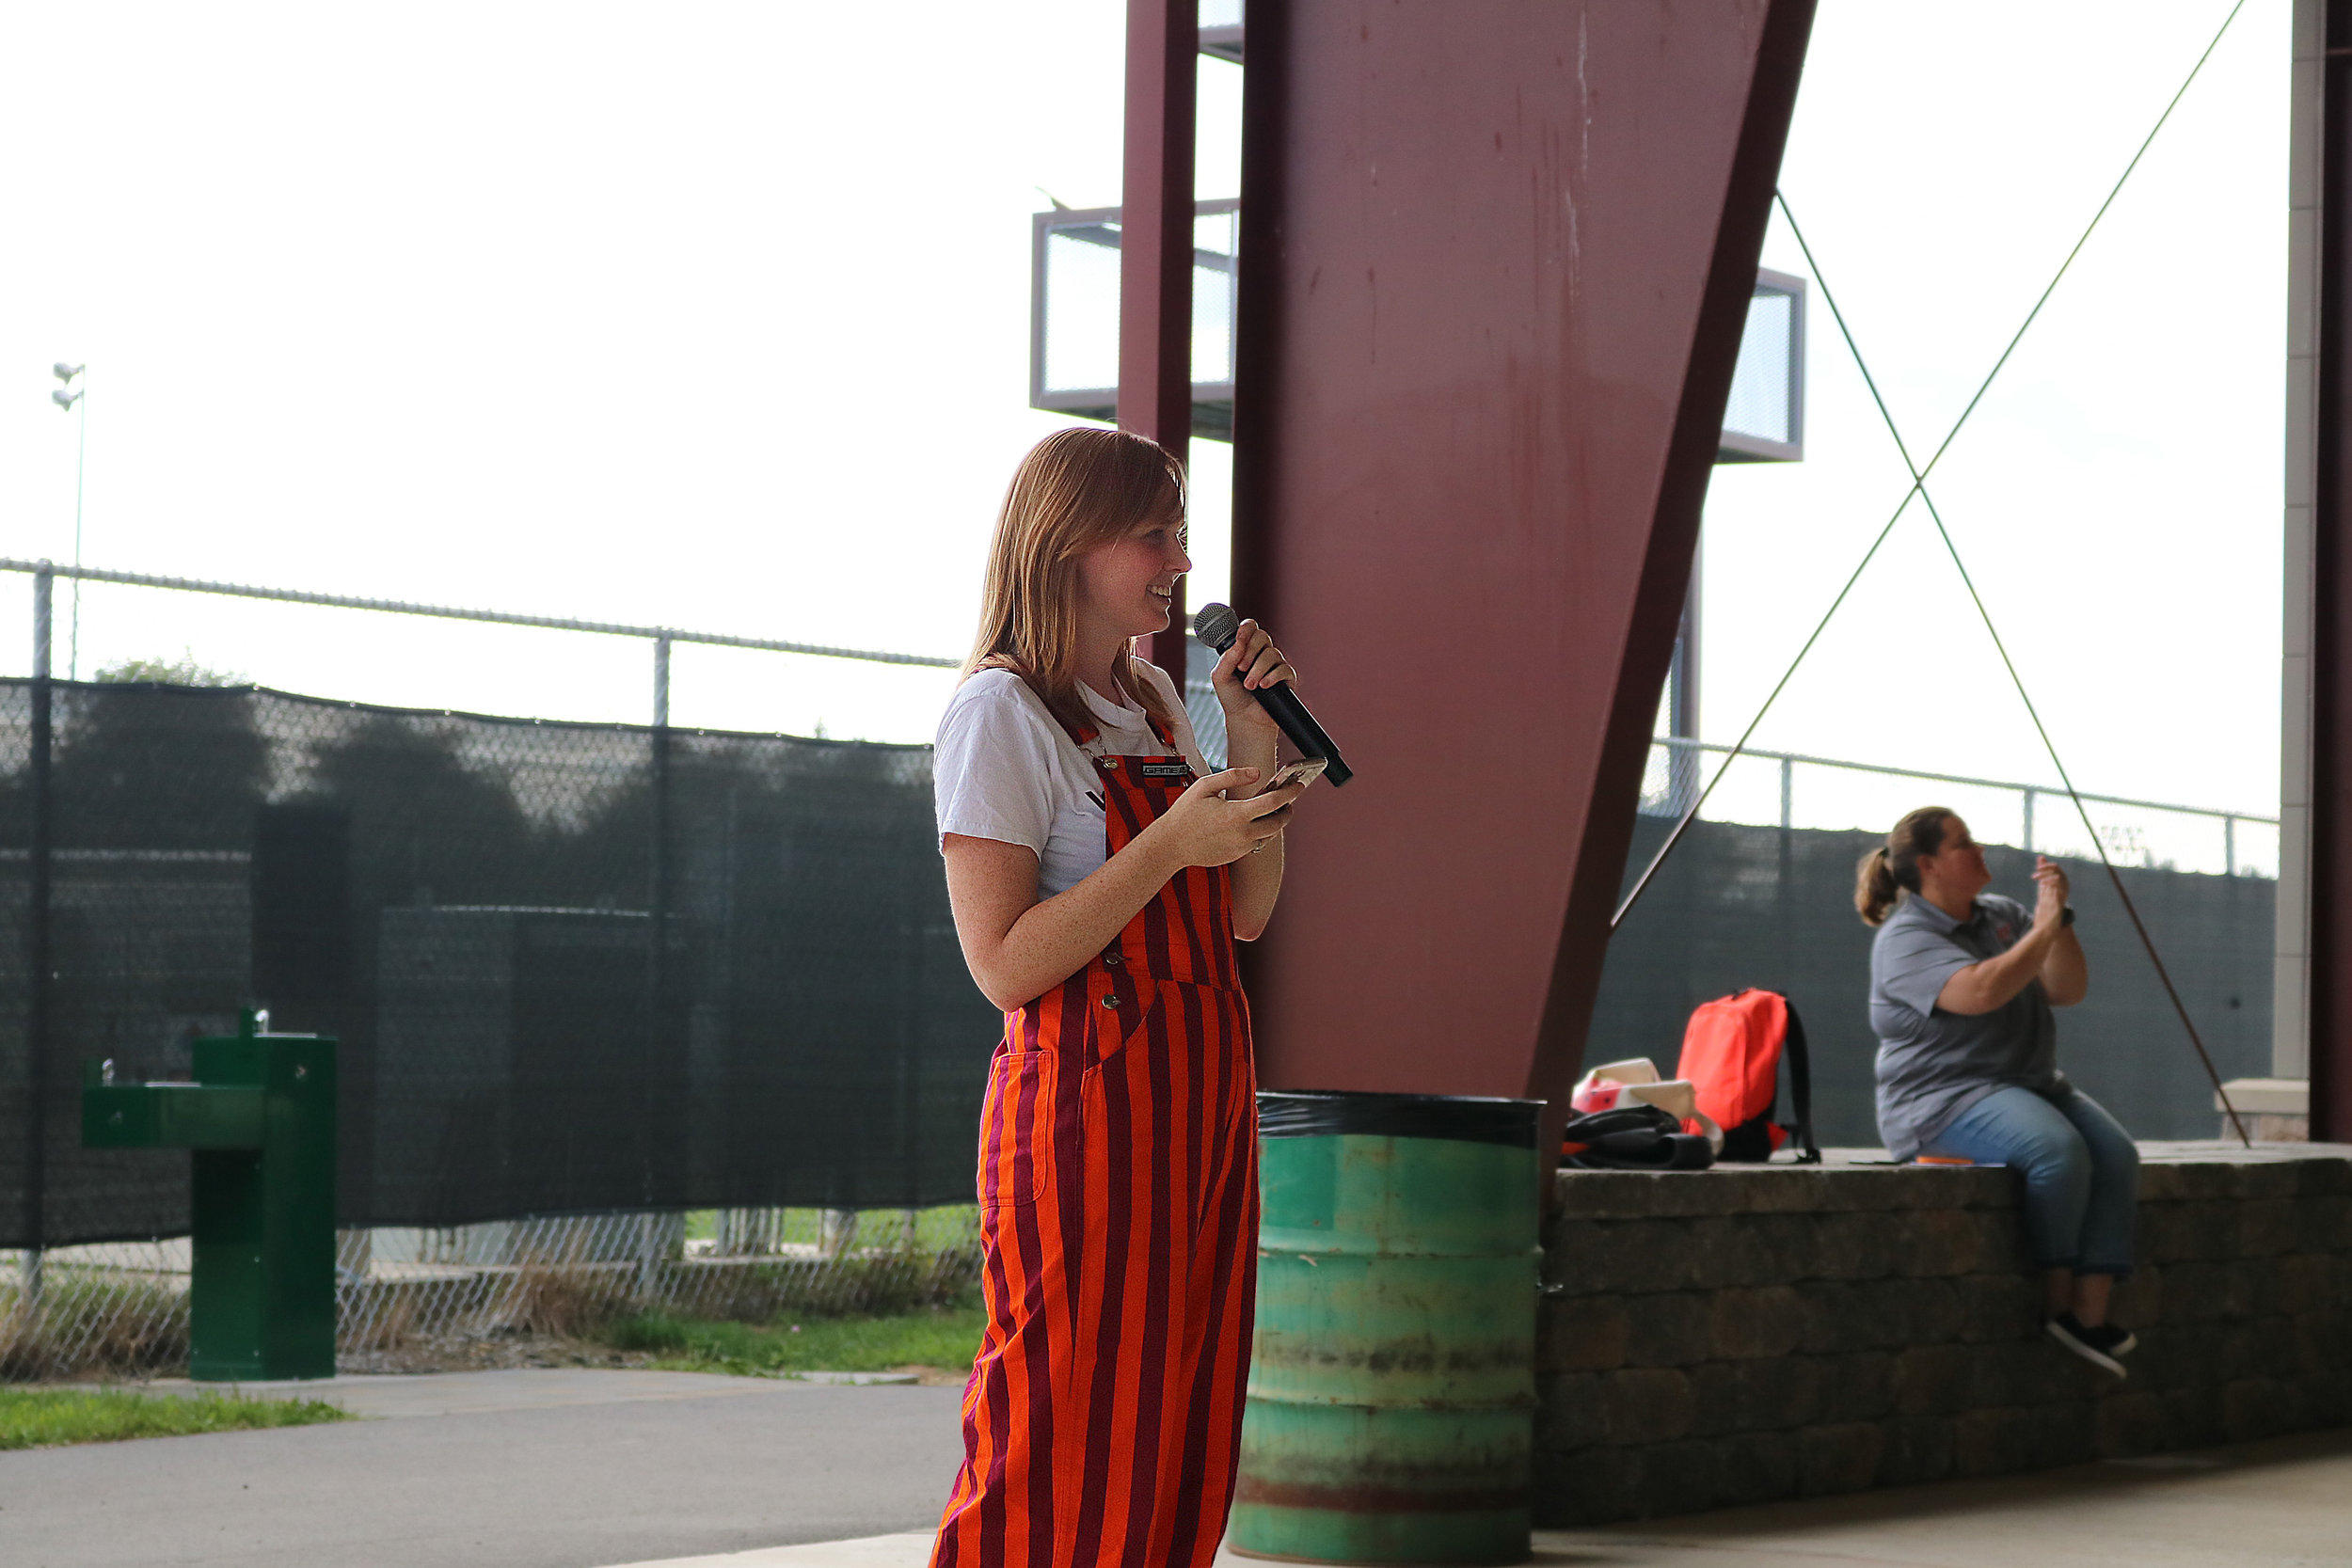 Executive Officer Mackenzie Knox addressing the MV's during Band Camp; Source: Alana Hassett